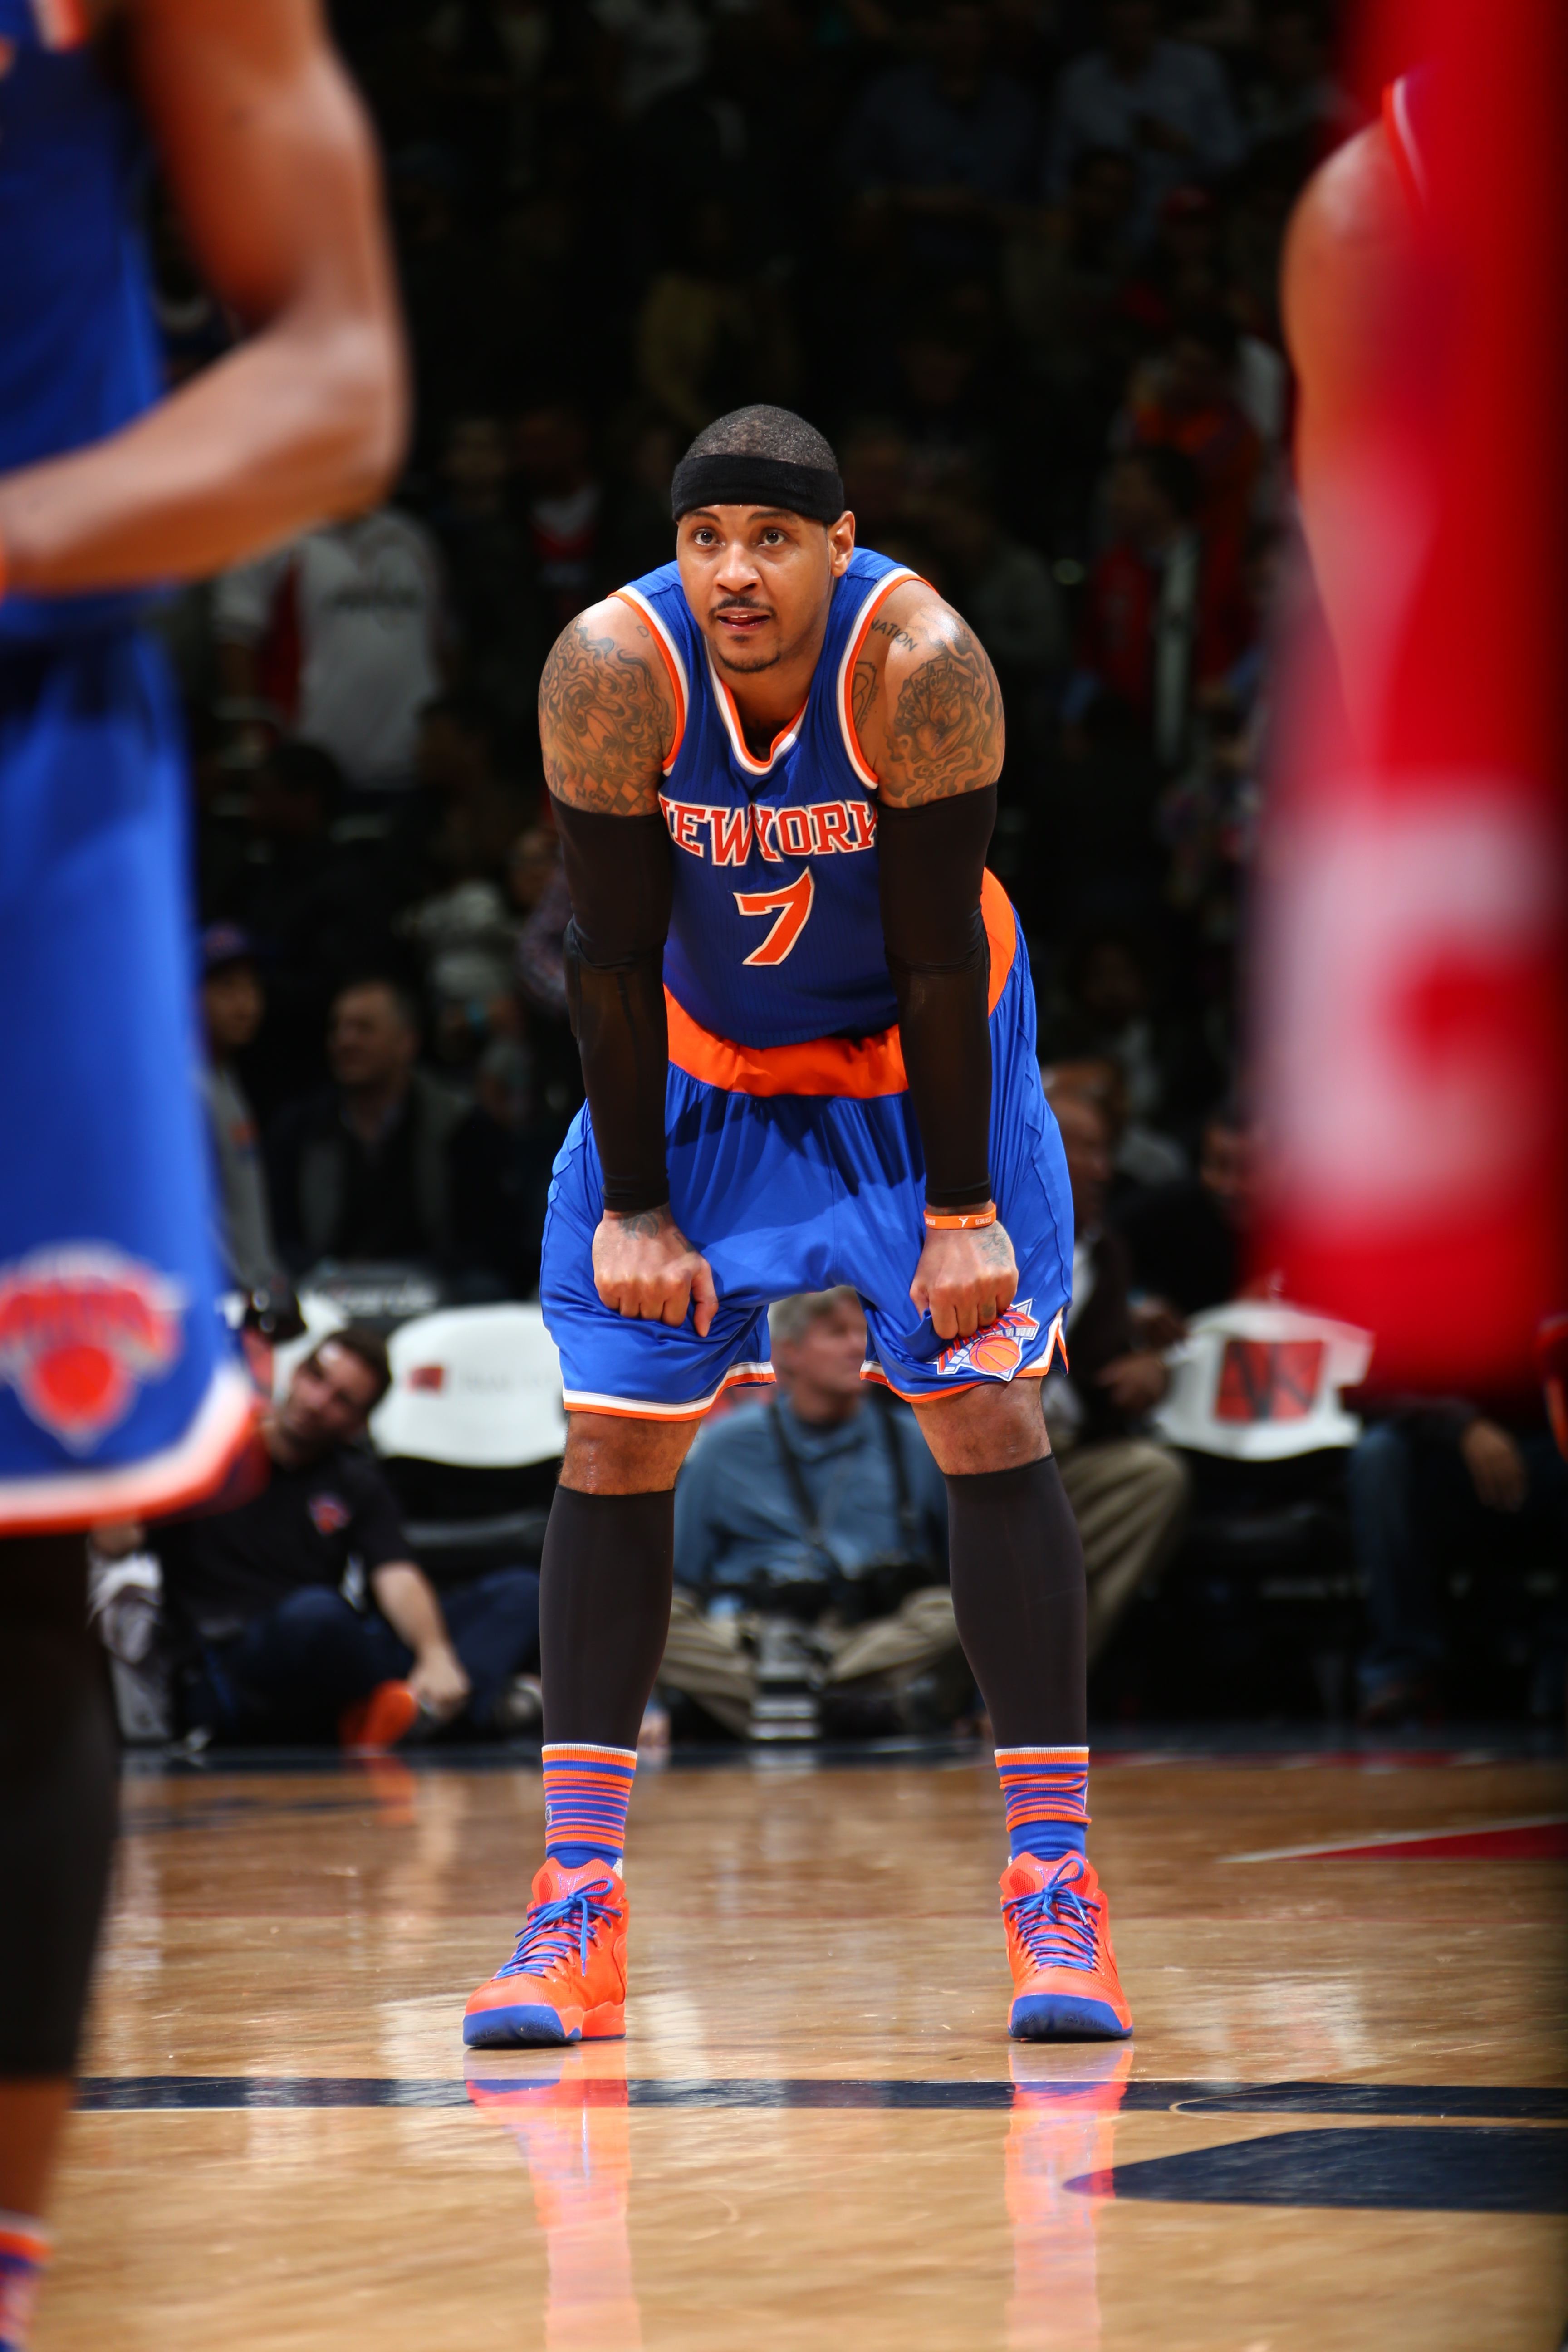 WASHINGTON, DC  - MARCH 19: Carmelo Anthony #7 of the New York Knicks during the game against the New York Knicks on March 19, 2016 at Verizon Center in Washington, District of Columbia. (Photo by Ned Dishman/NBAE via Getty Images)